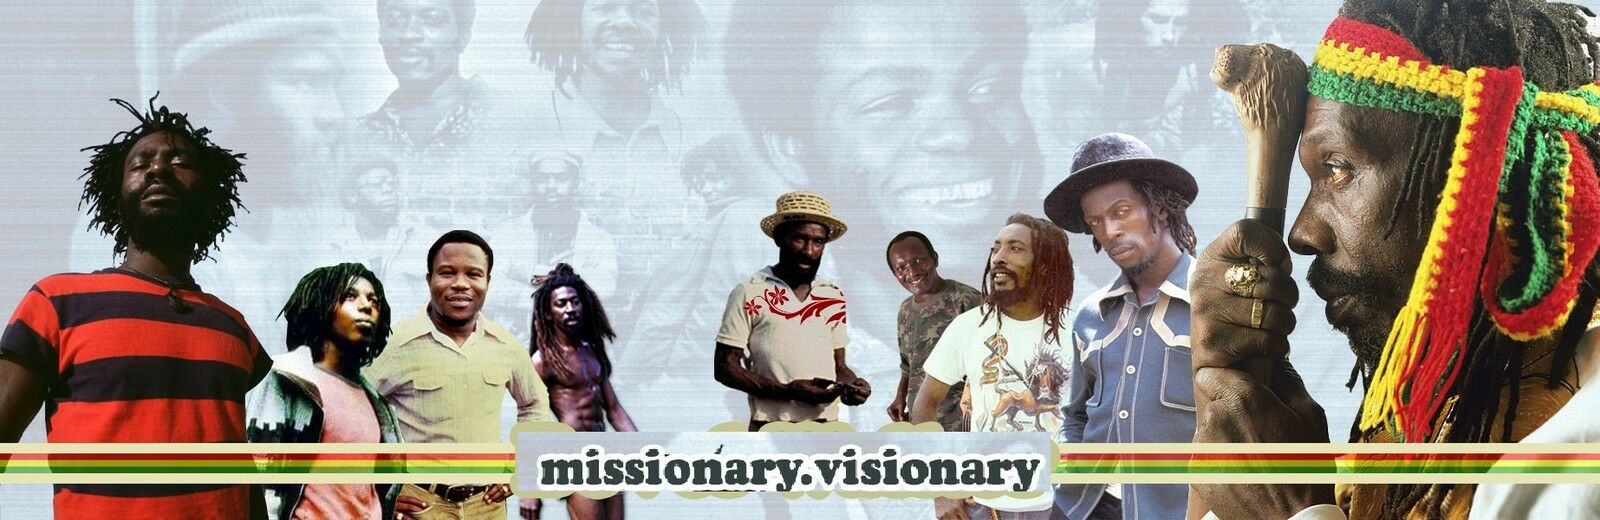 missionary.visionary